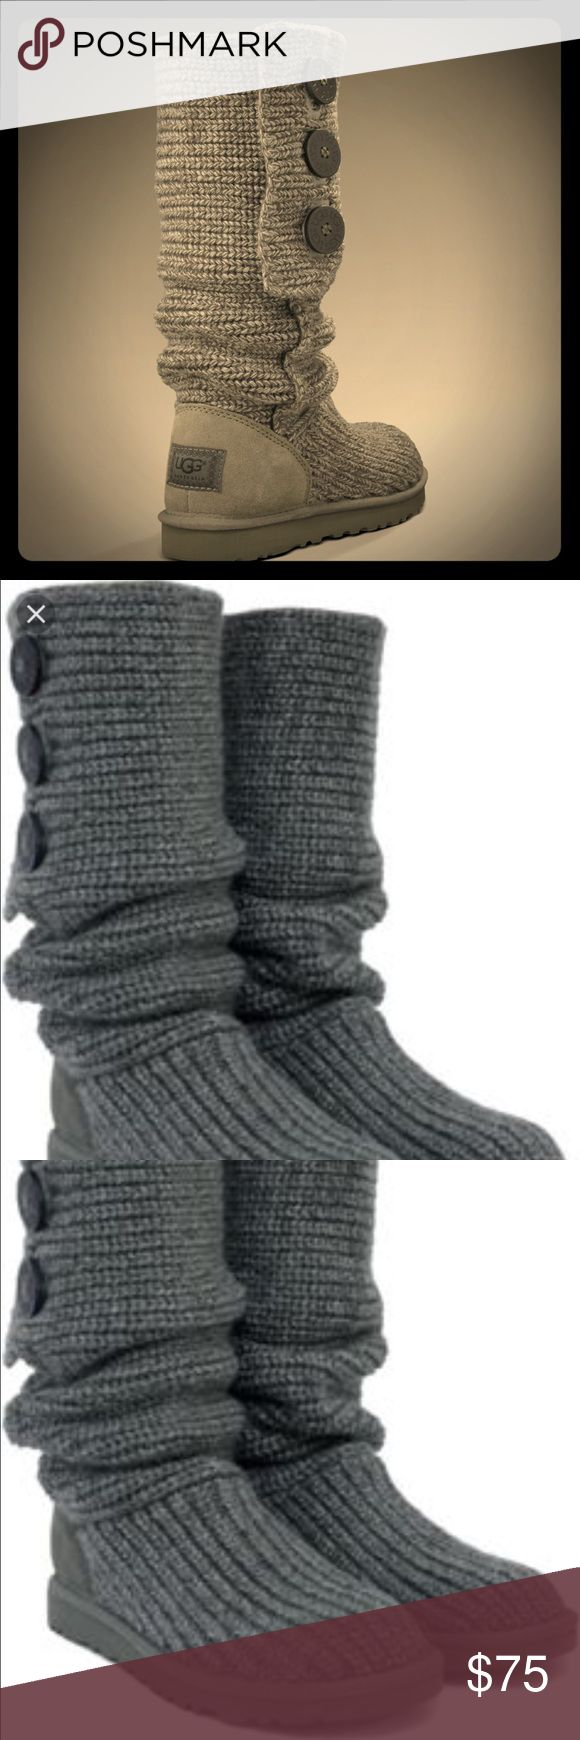 Grey Ugg Knit Boots These grey Ugg Knit boots are so comfortable and are too cute for words. I only wore them twice and they are in awesome condition and come from a smoke free home :) UGG Shoes Winter & Rain Boots